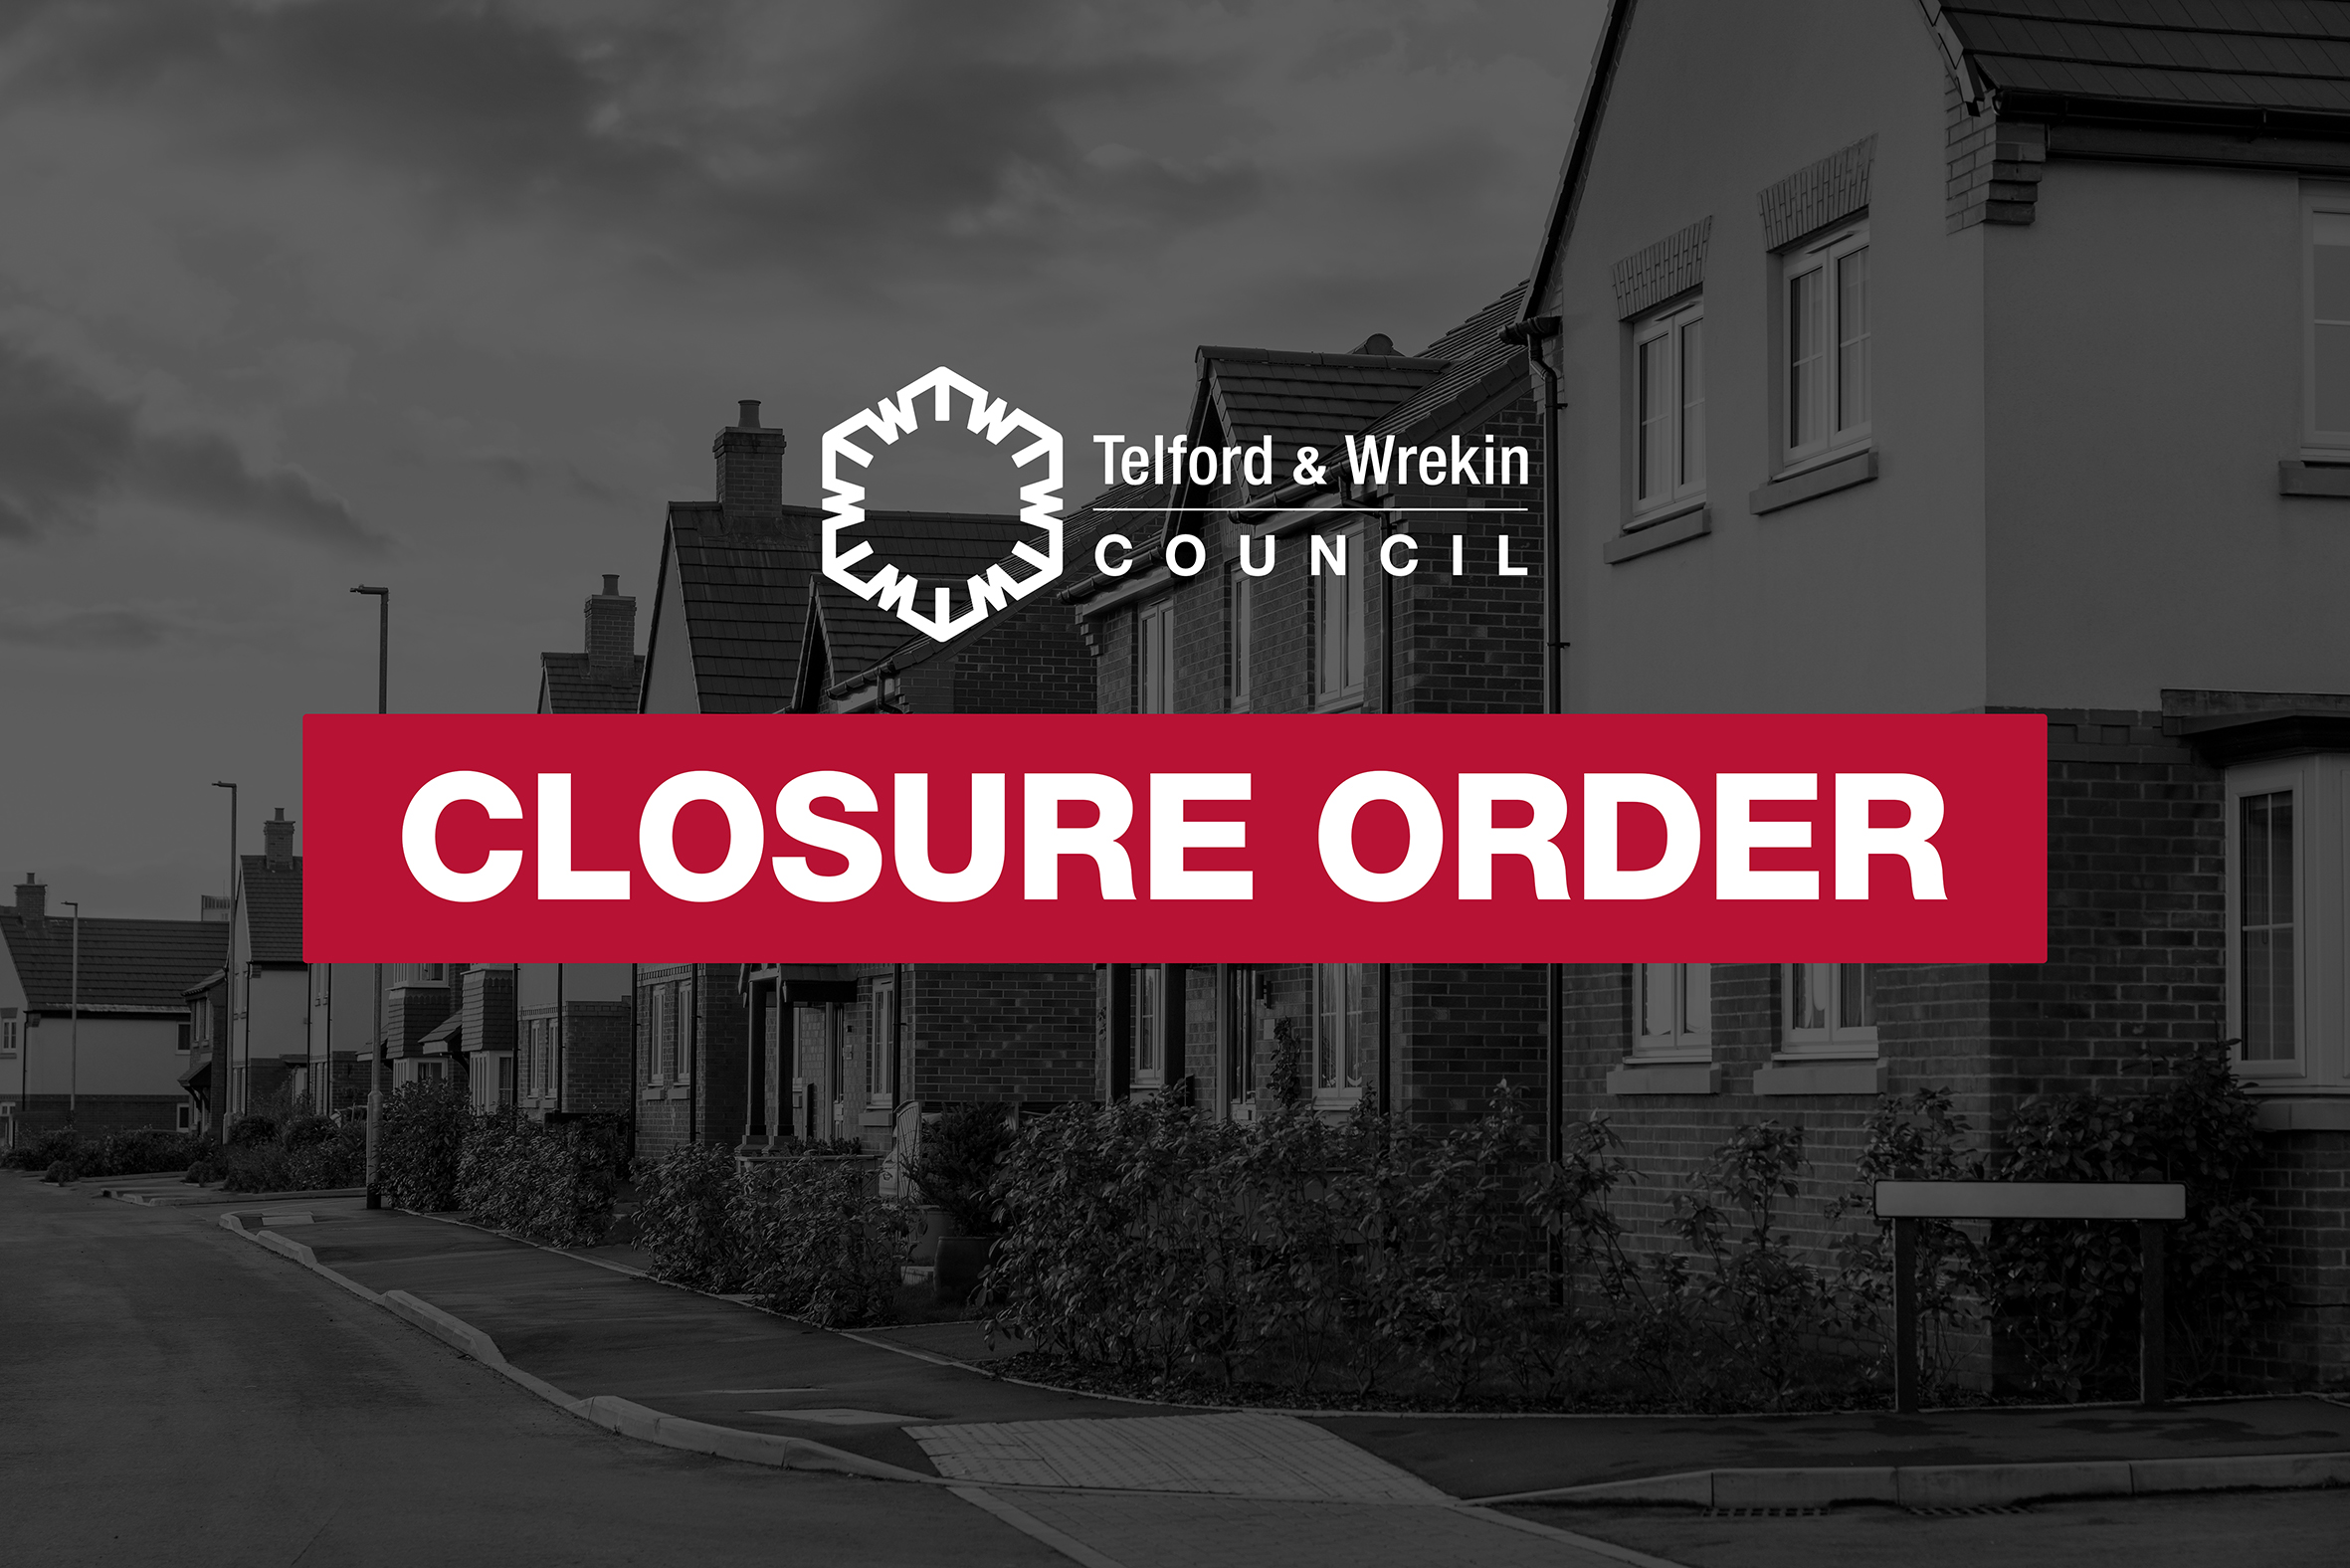 Council's Anti-Social Behaviour team secures first 'closure order' on problem property